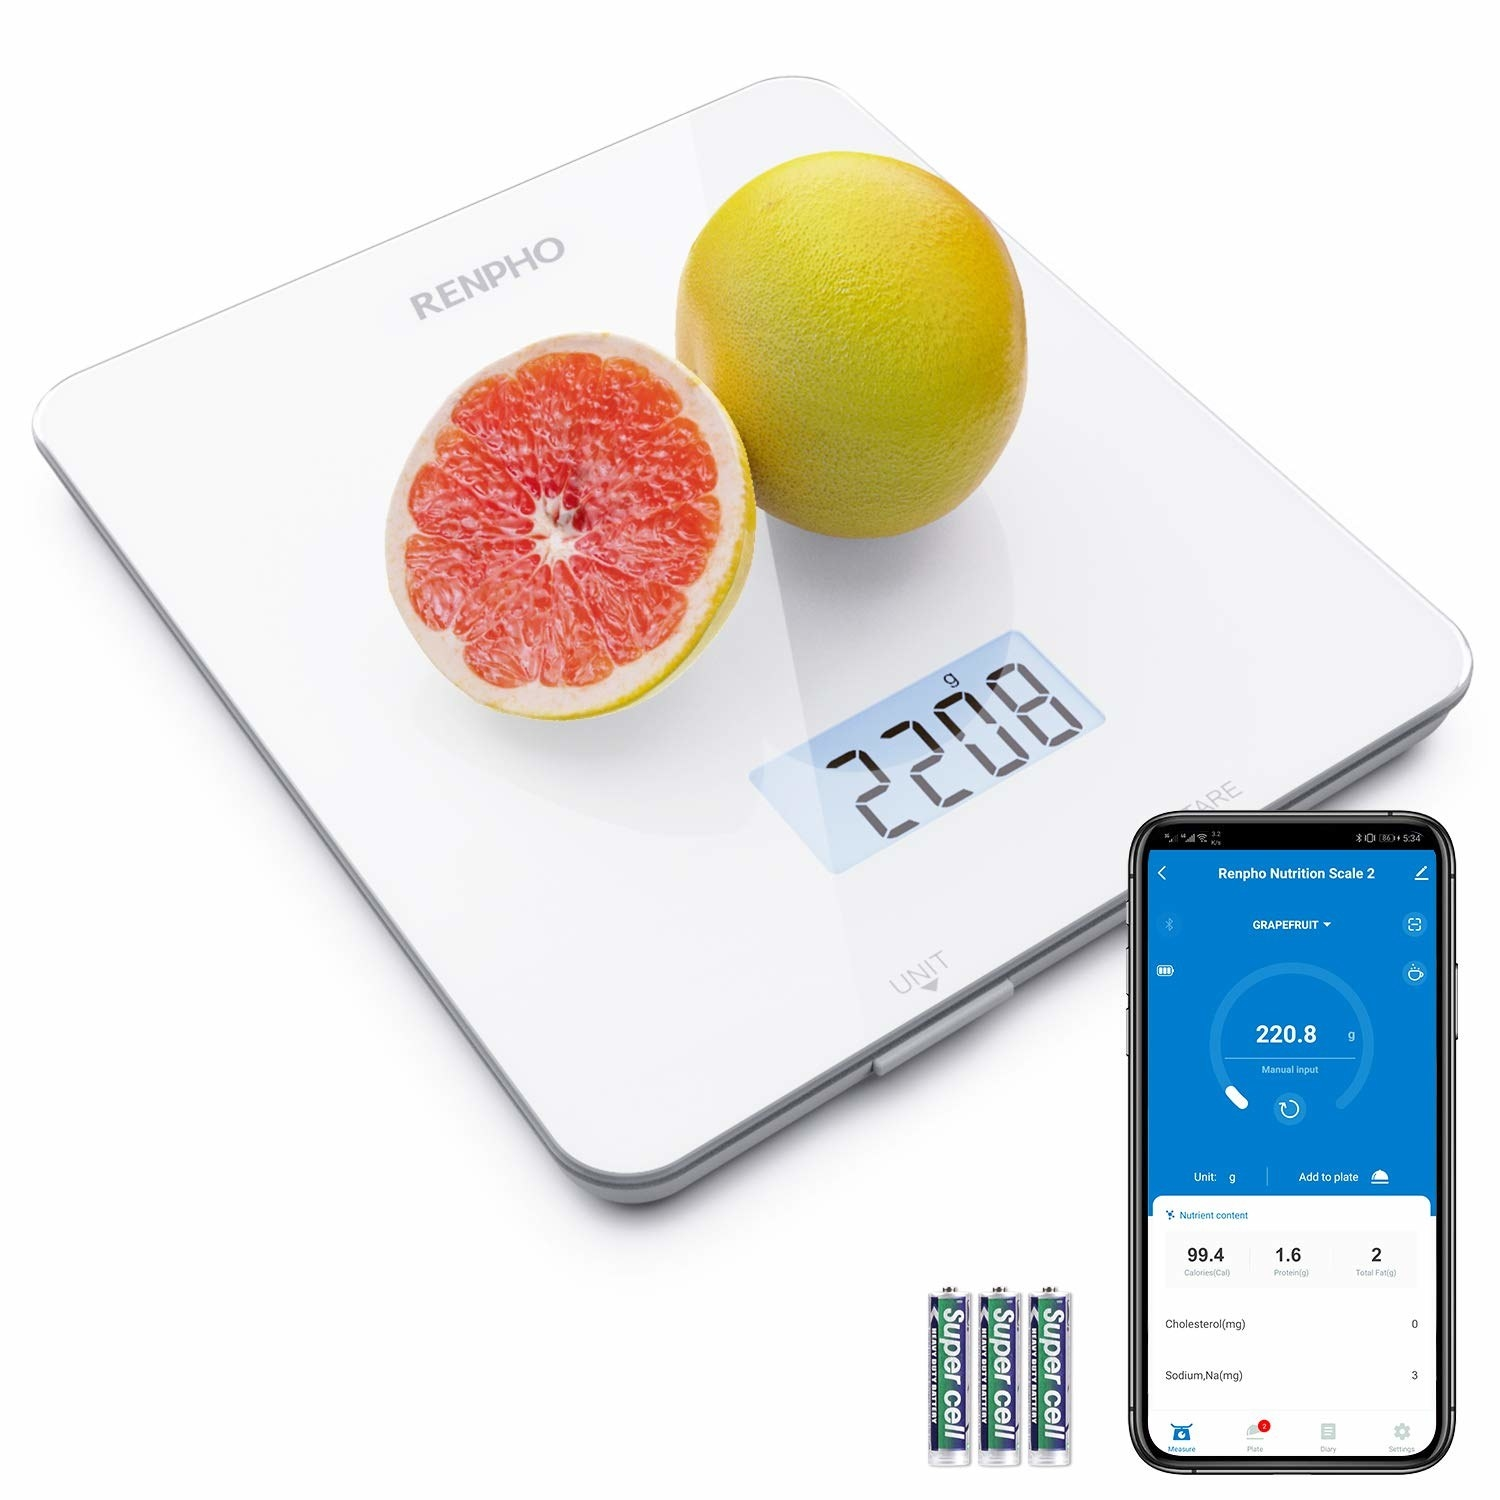 Smart scale with grapefruit on top next to smartphone with accompanying app and three batteries